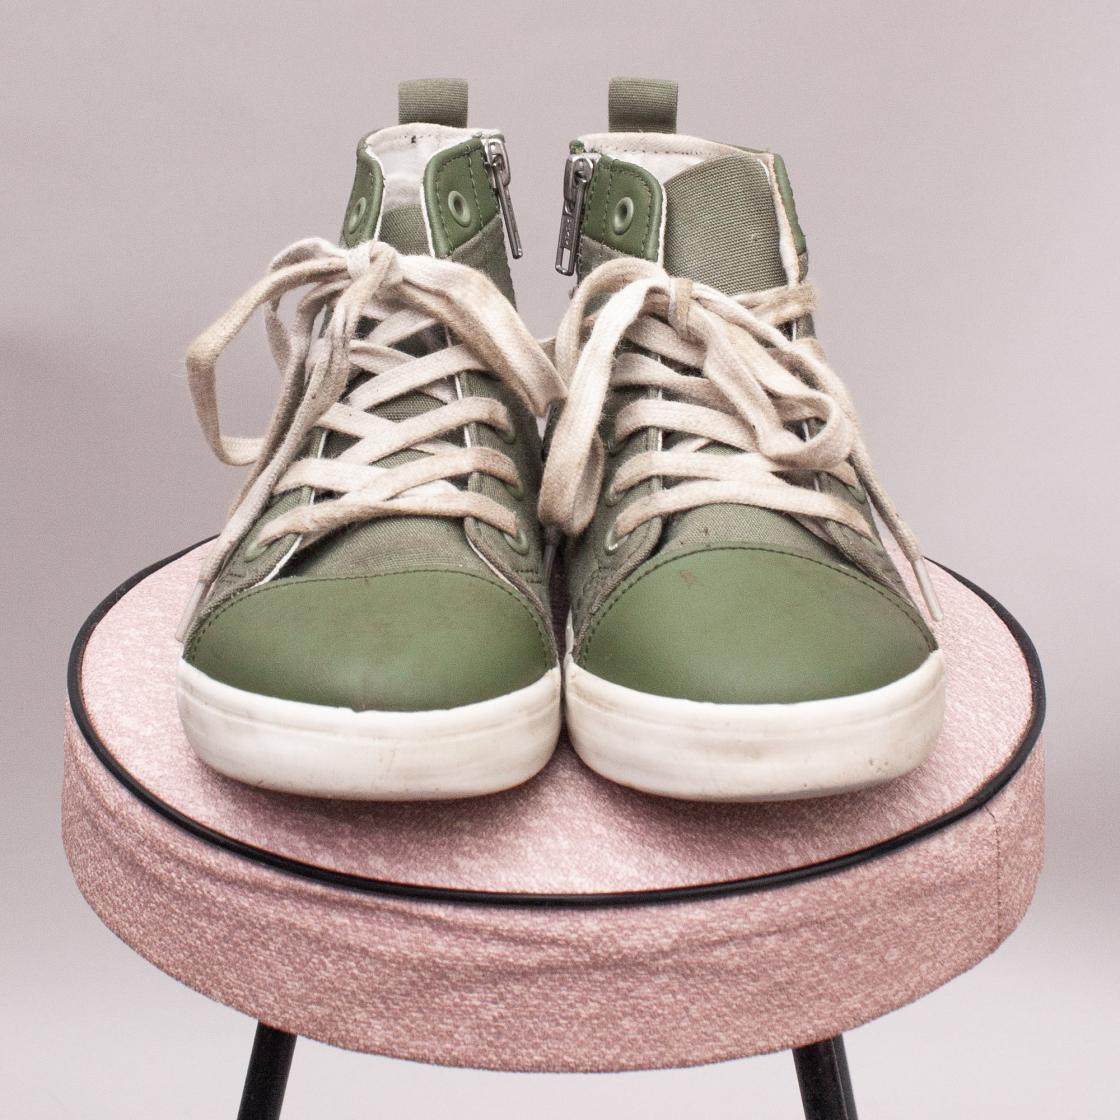 Country Road Canvas High Tops - Size EU 31